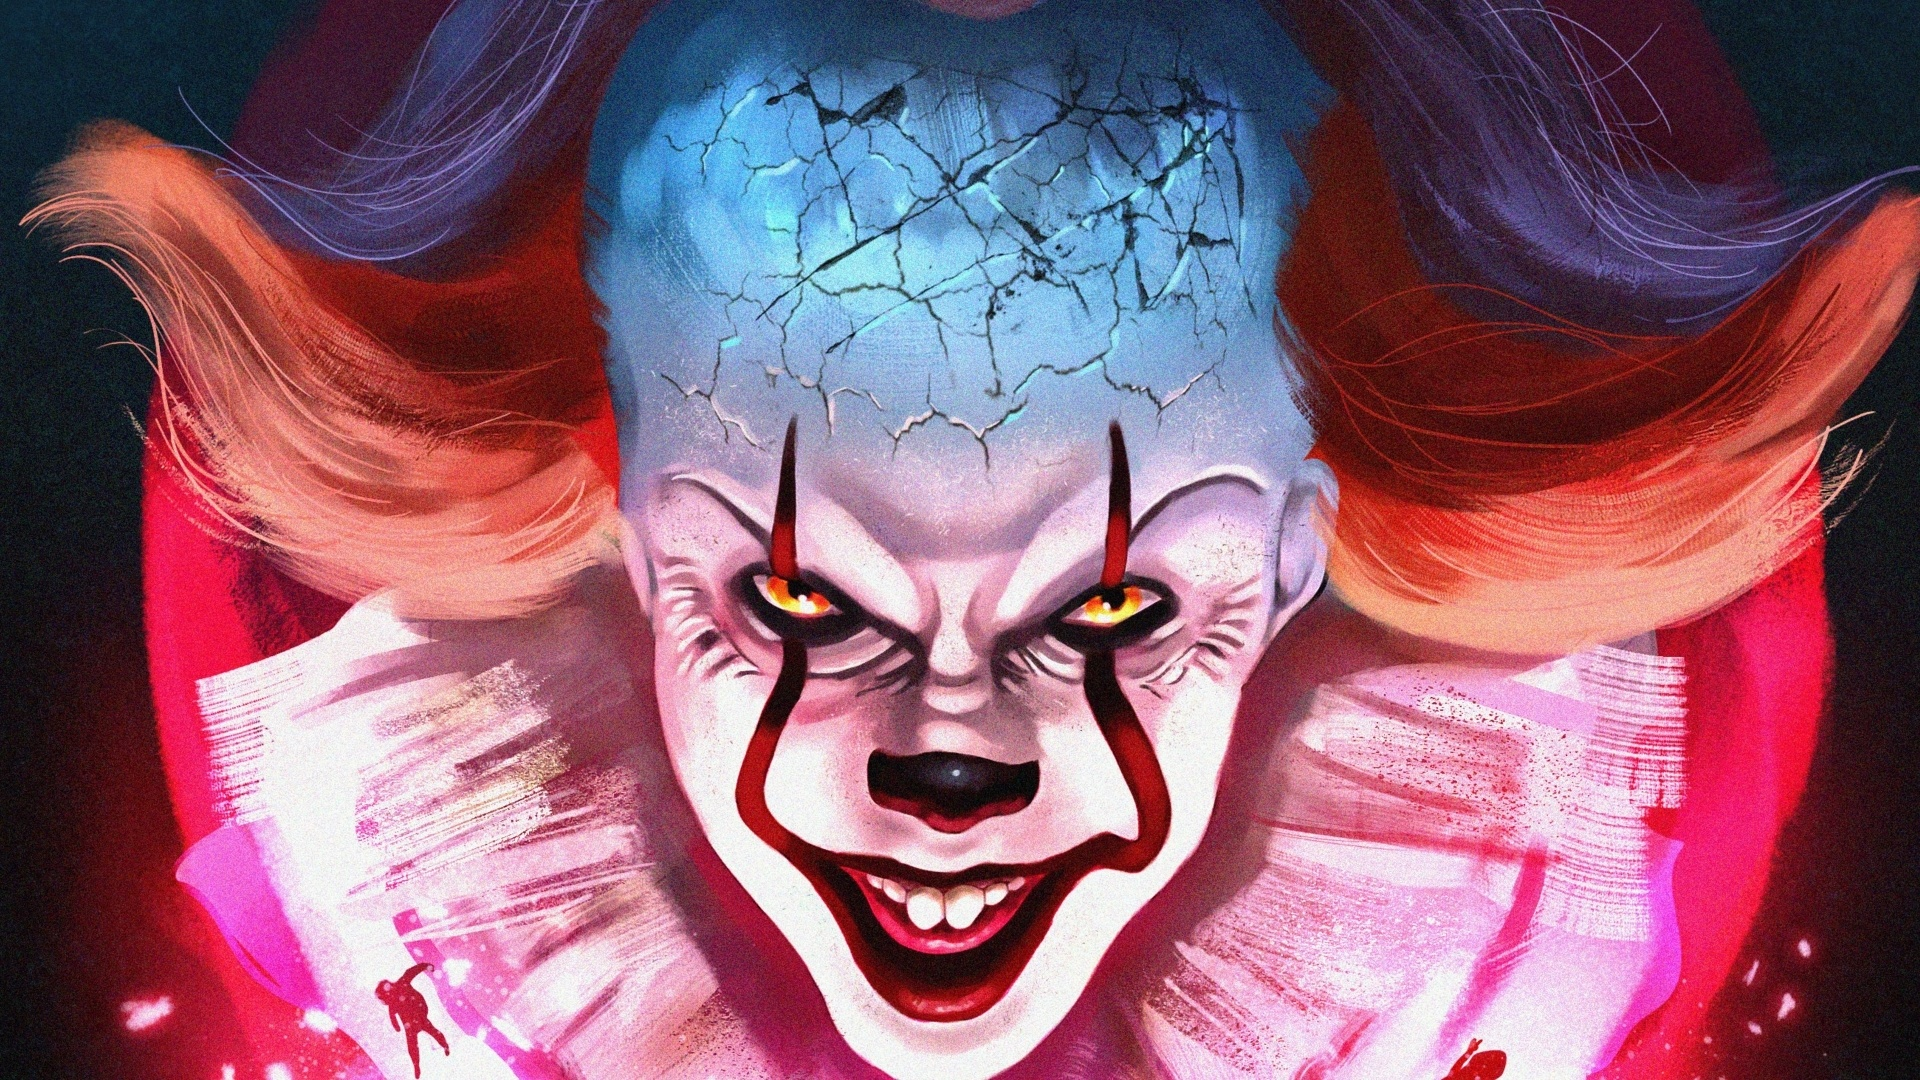 Pennywise background wallpaper